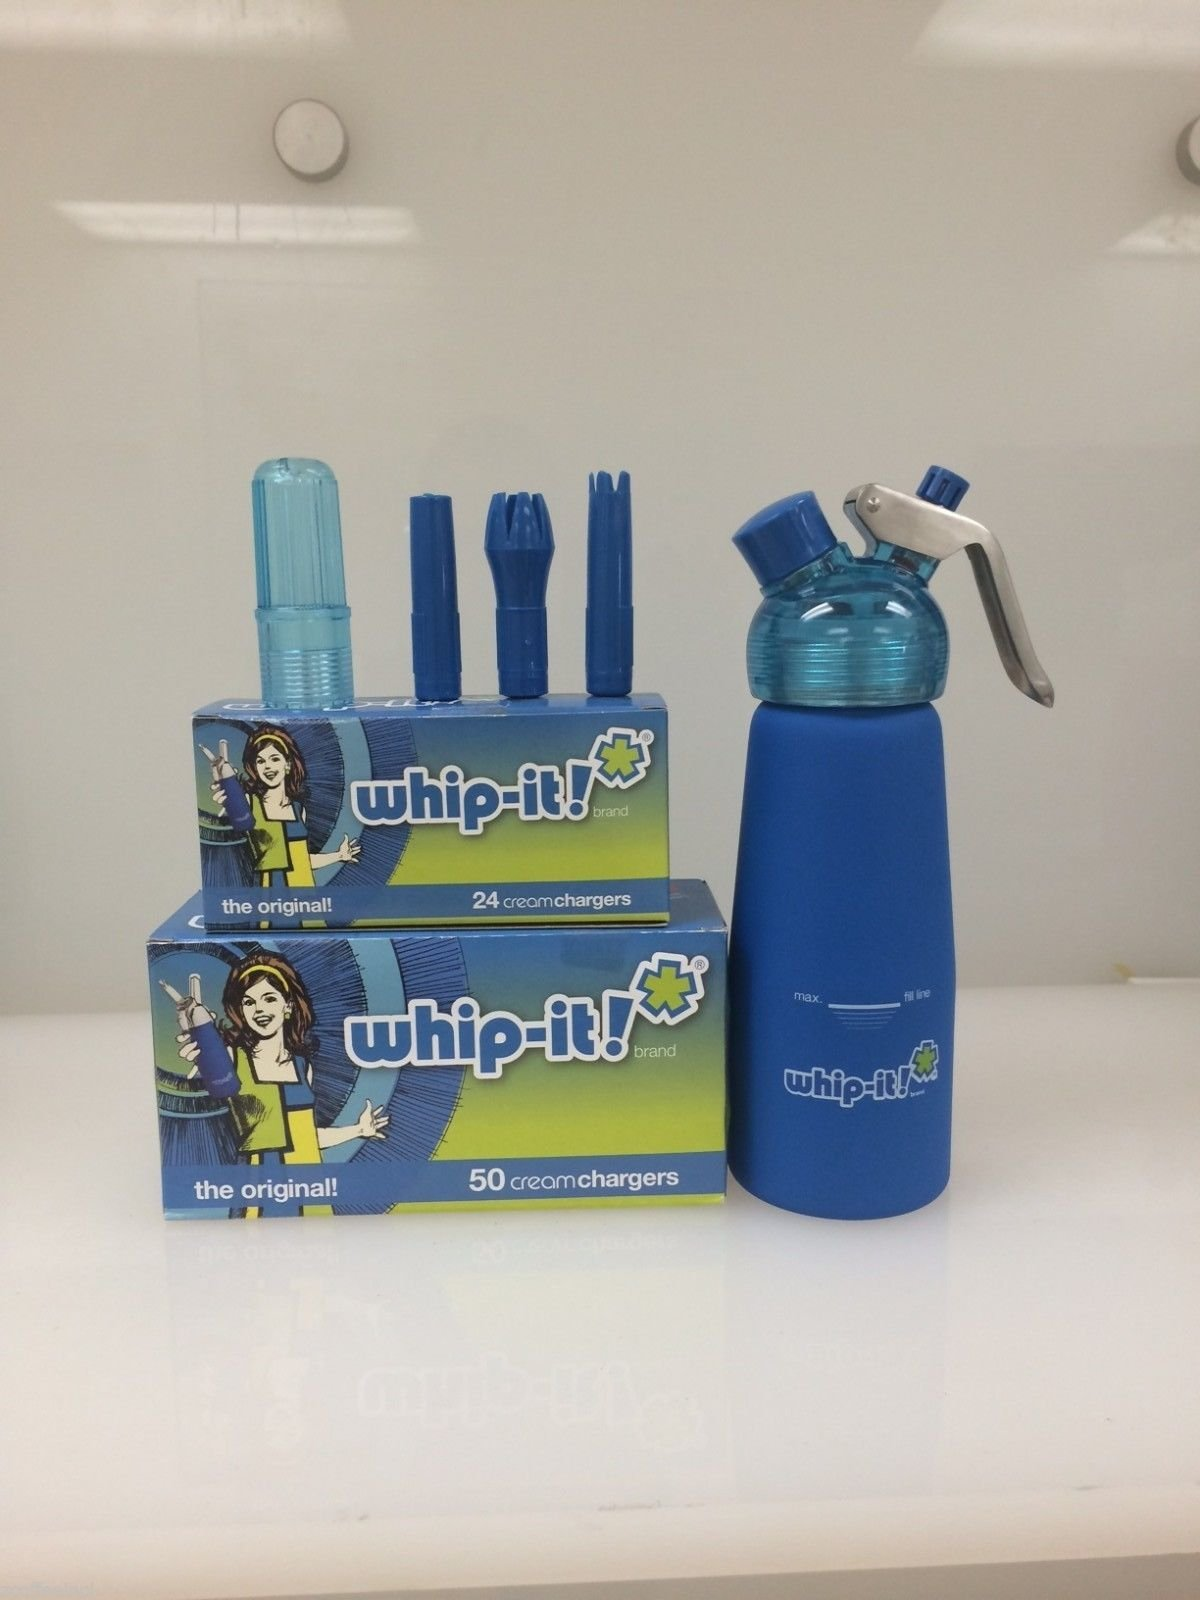 300 Whipped Cream Chargers Nitrous Oxide N2o Whip-it Medical Grade Combo Blue